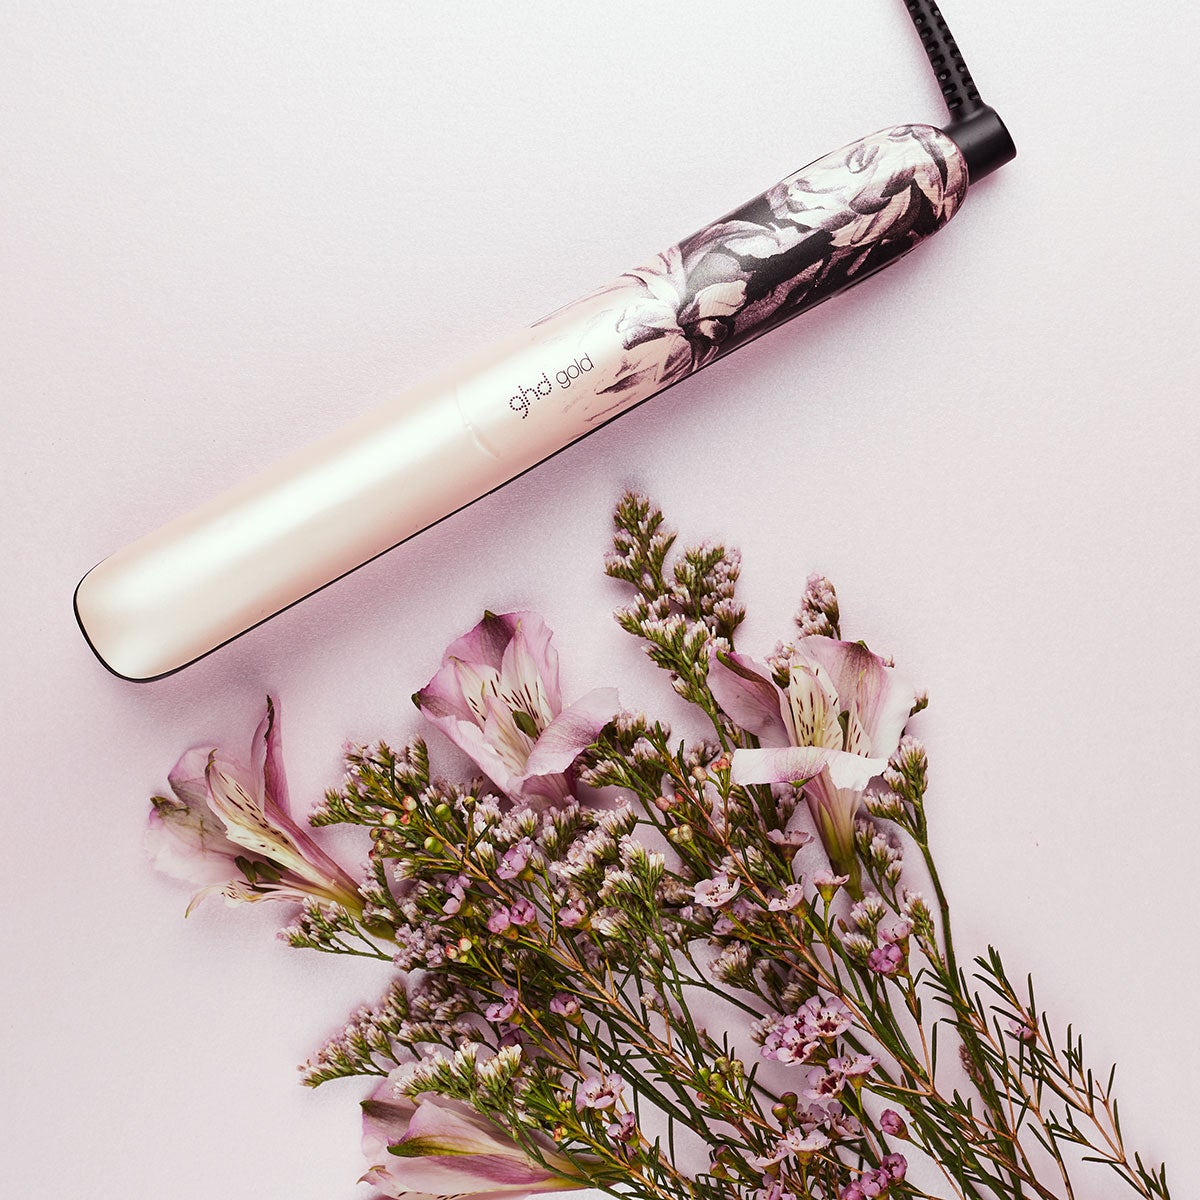 ghd Gold Ink On Pink Styler